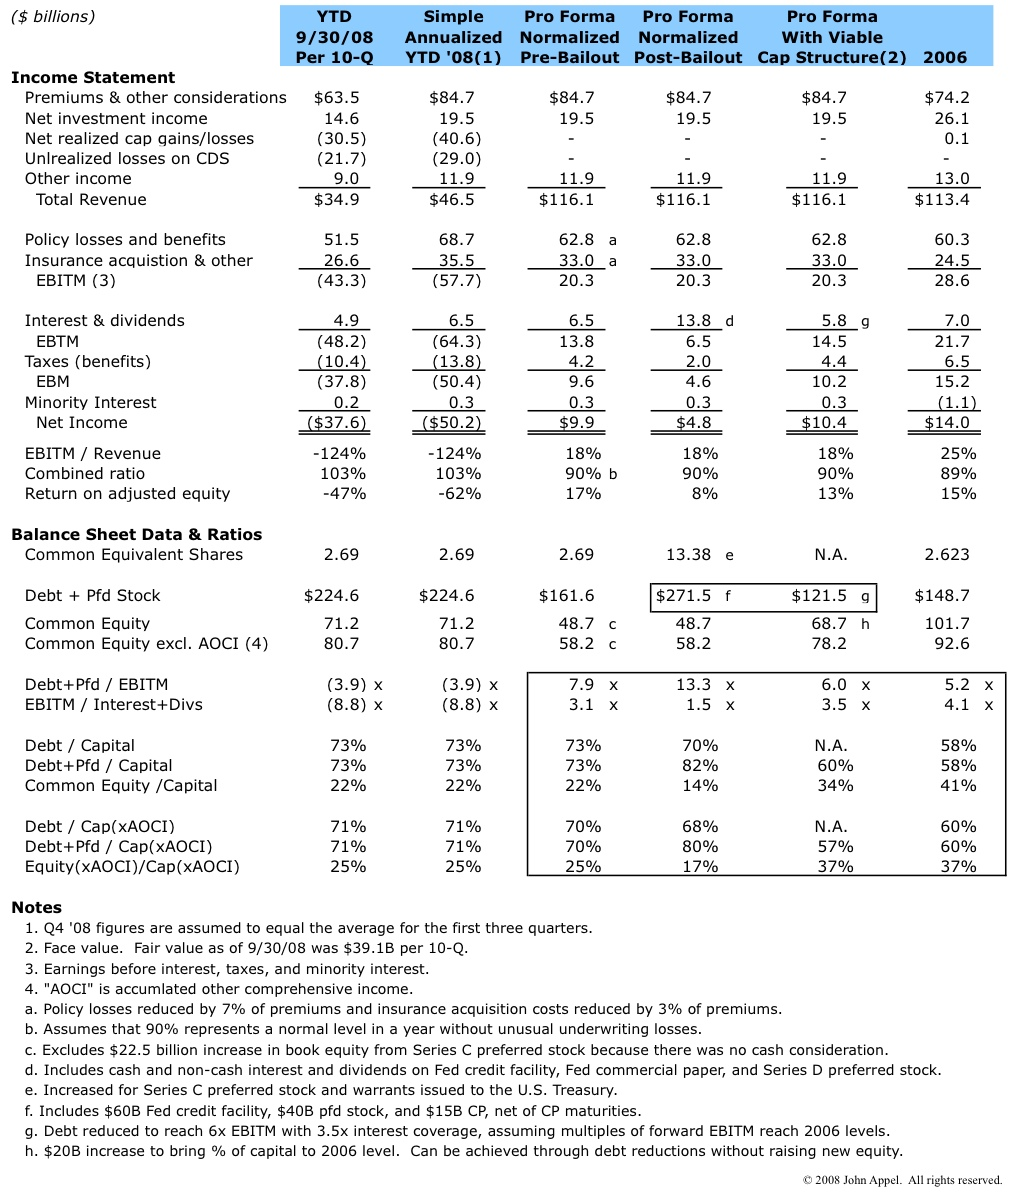 aig pro forma p l and capitalization ratios in search of value